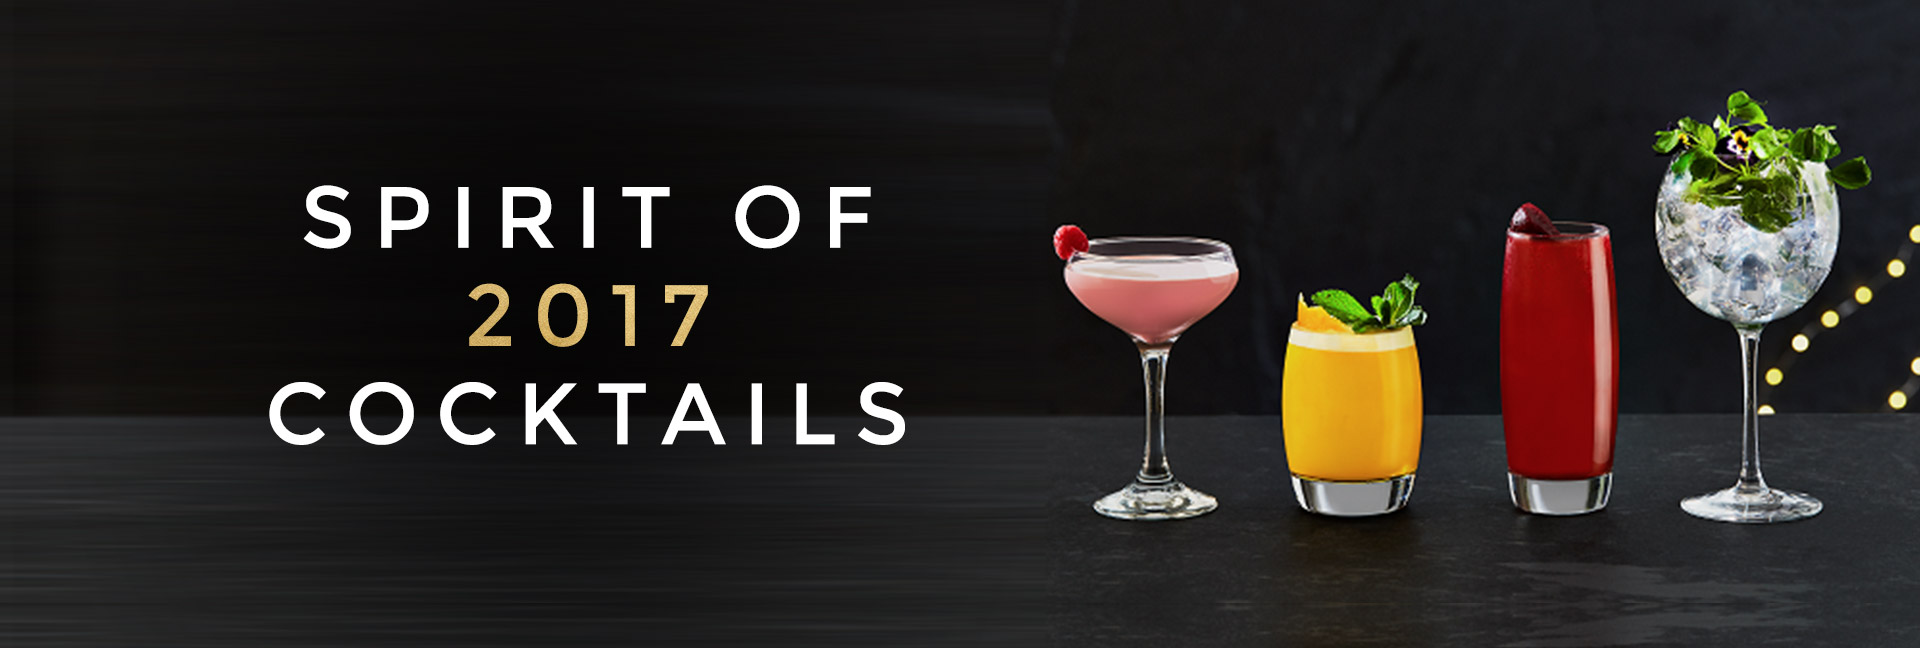 Spirit of 2017 cocktails at All Bar One